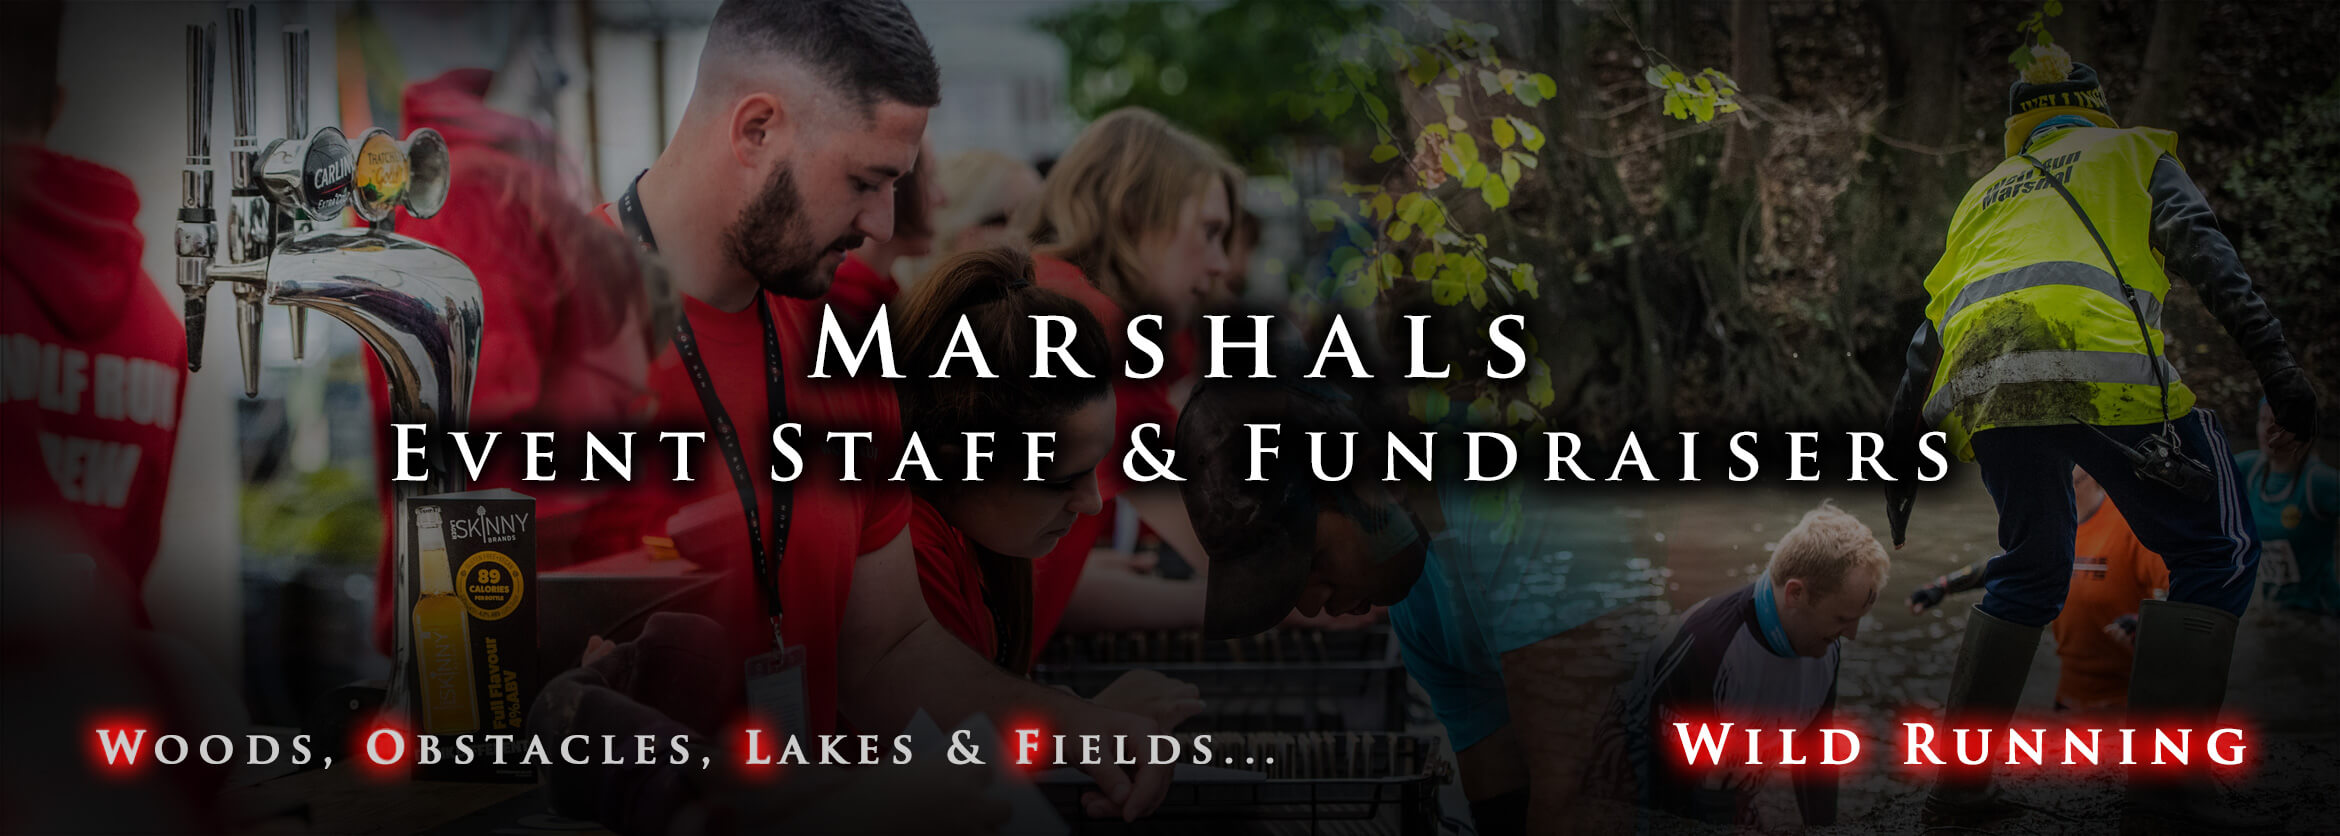 Marshals, event staff and fundraisers